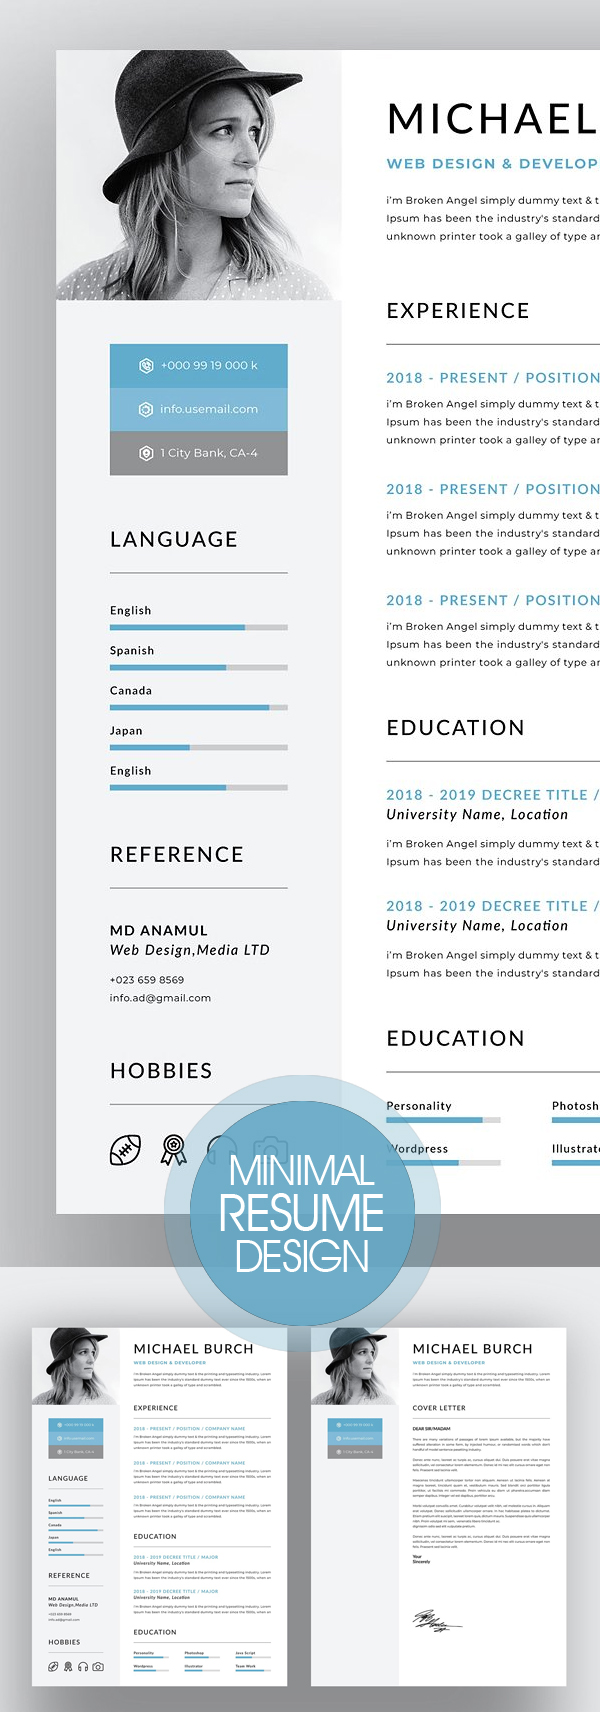 Creative Minimal Resume Design 2018